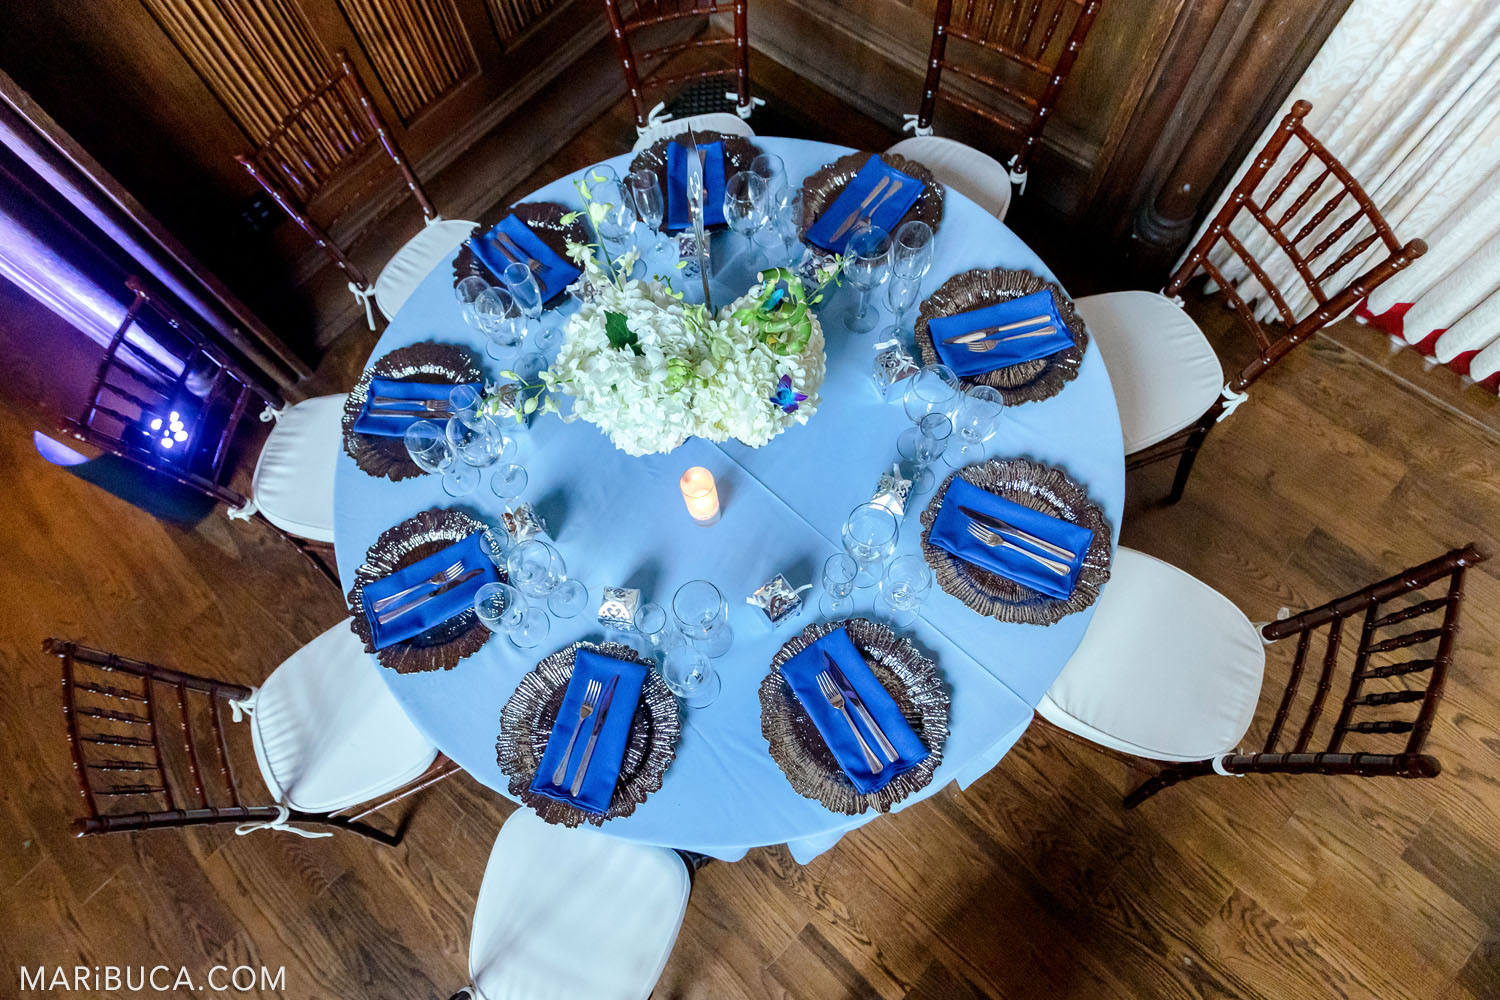 Rounded light blue table with navy blue towels and white fresh flowers in the Great Hall, Kohl Mansion, Burlingame